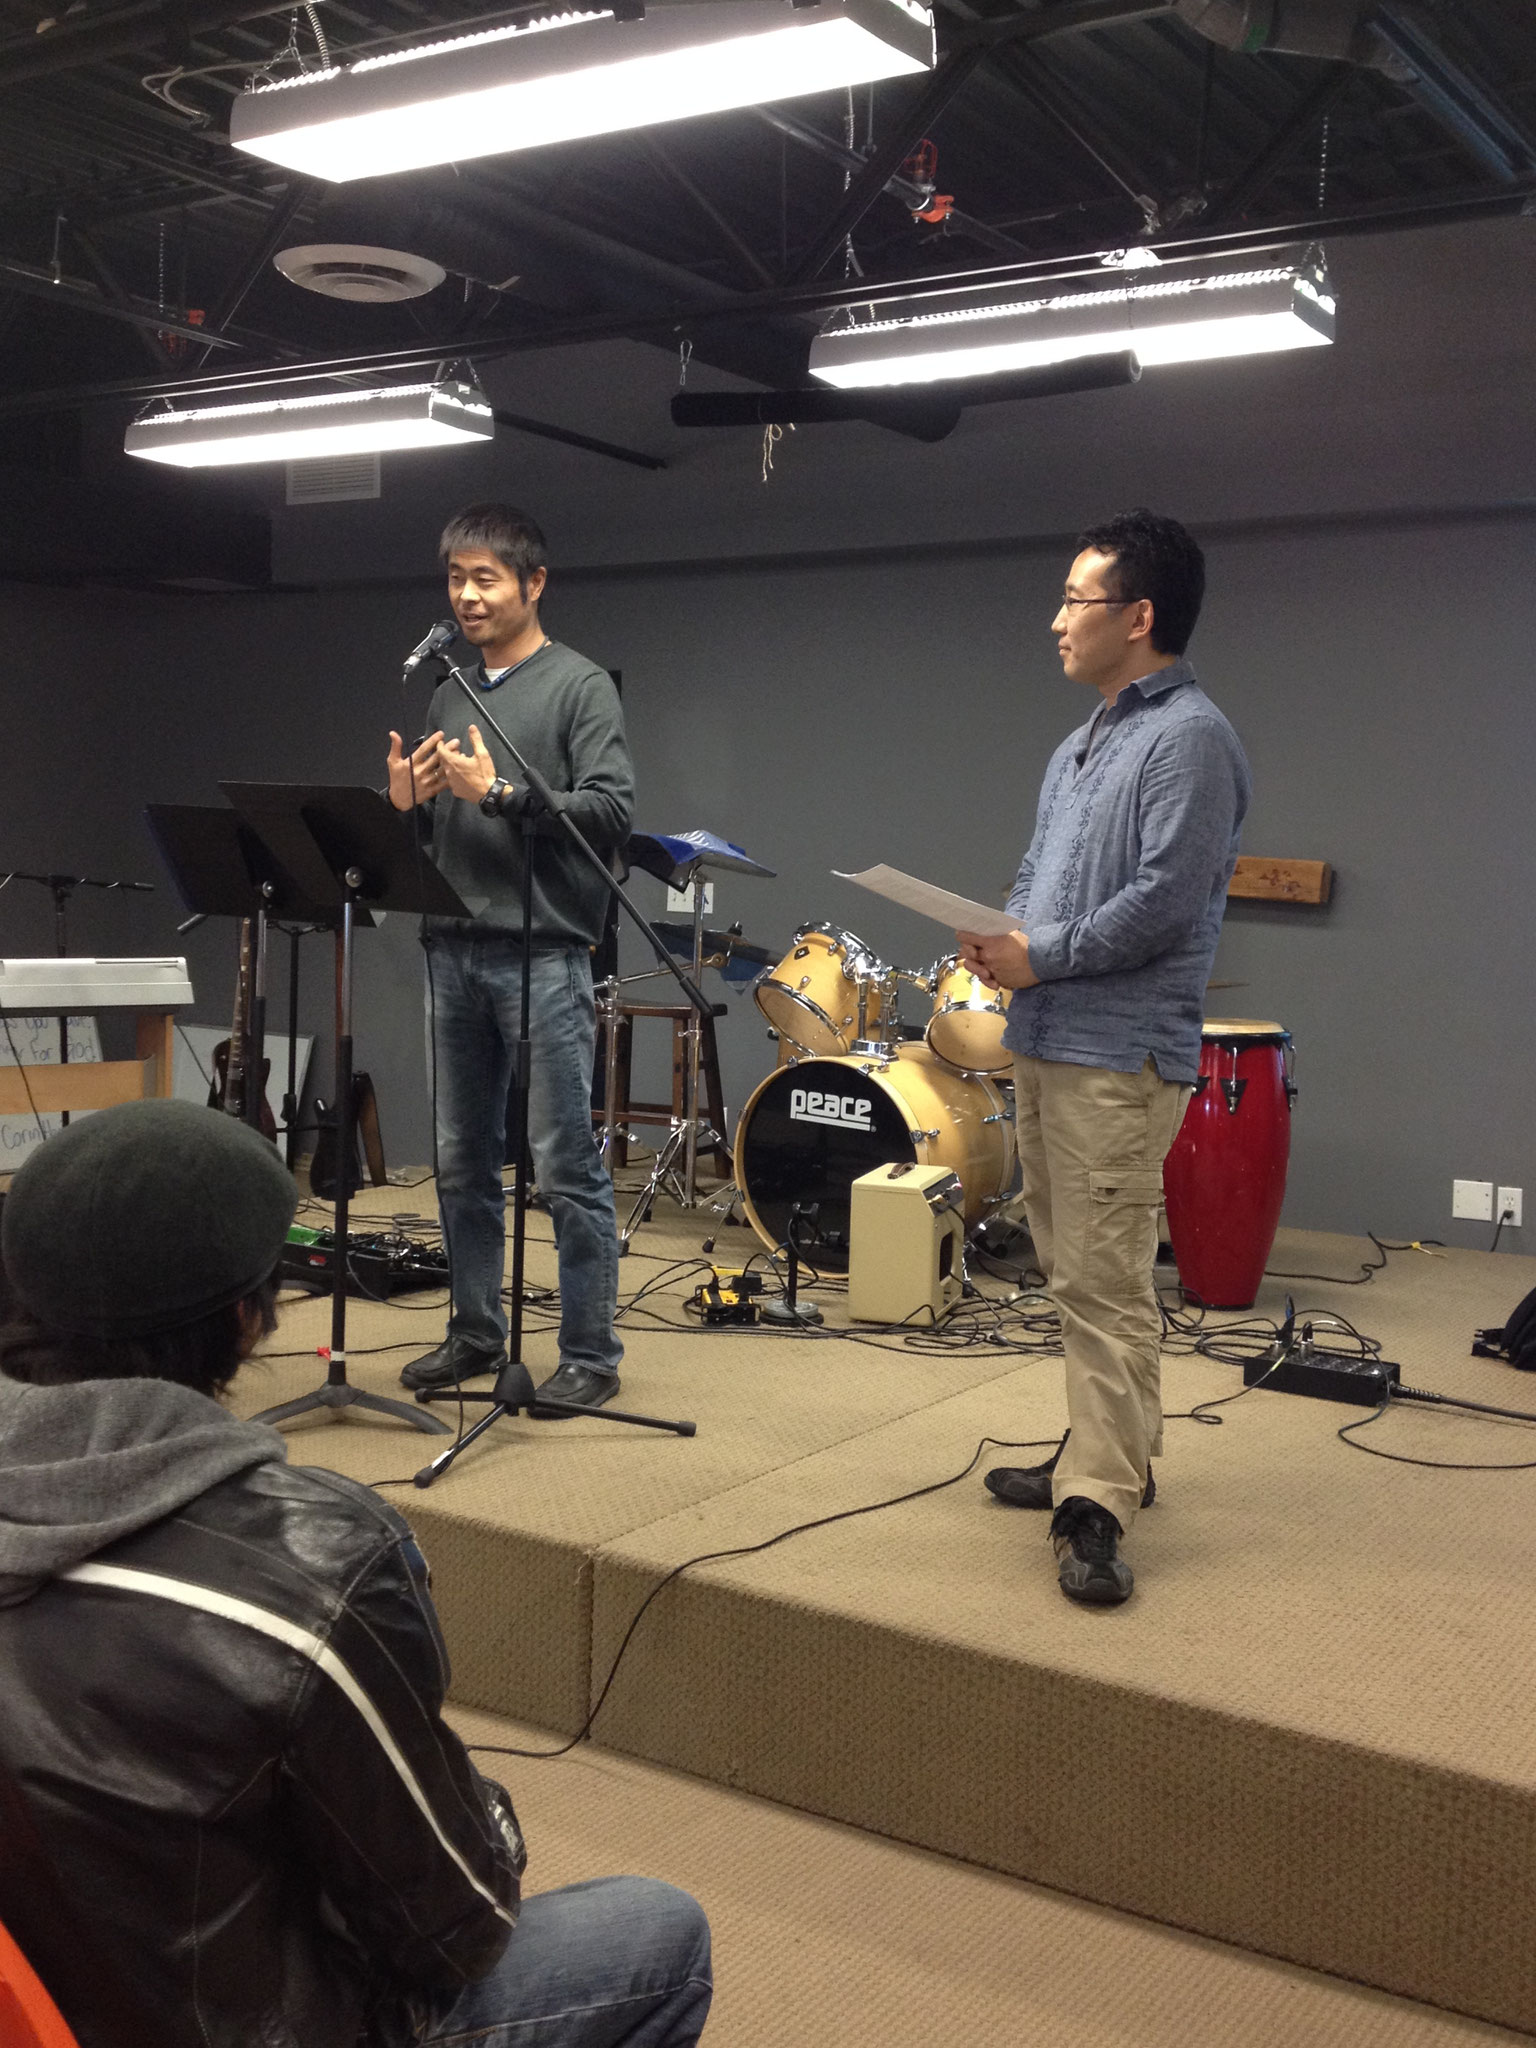 Nov,6th Kenji Kondo came to Crossover to speak about his ministry in Japan